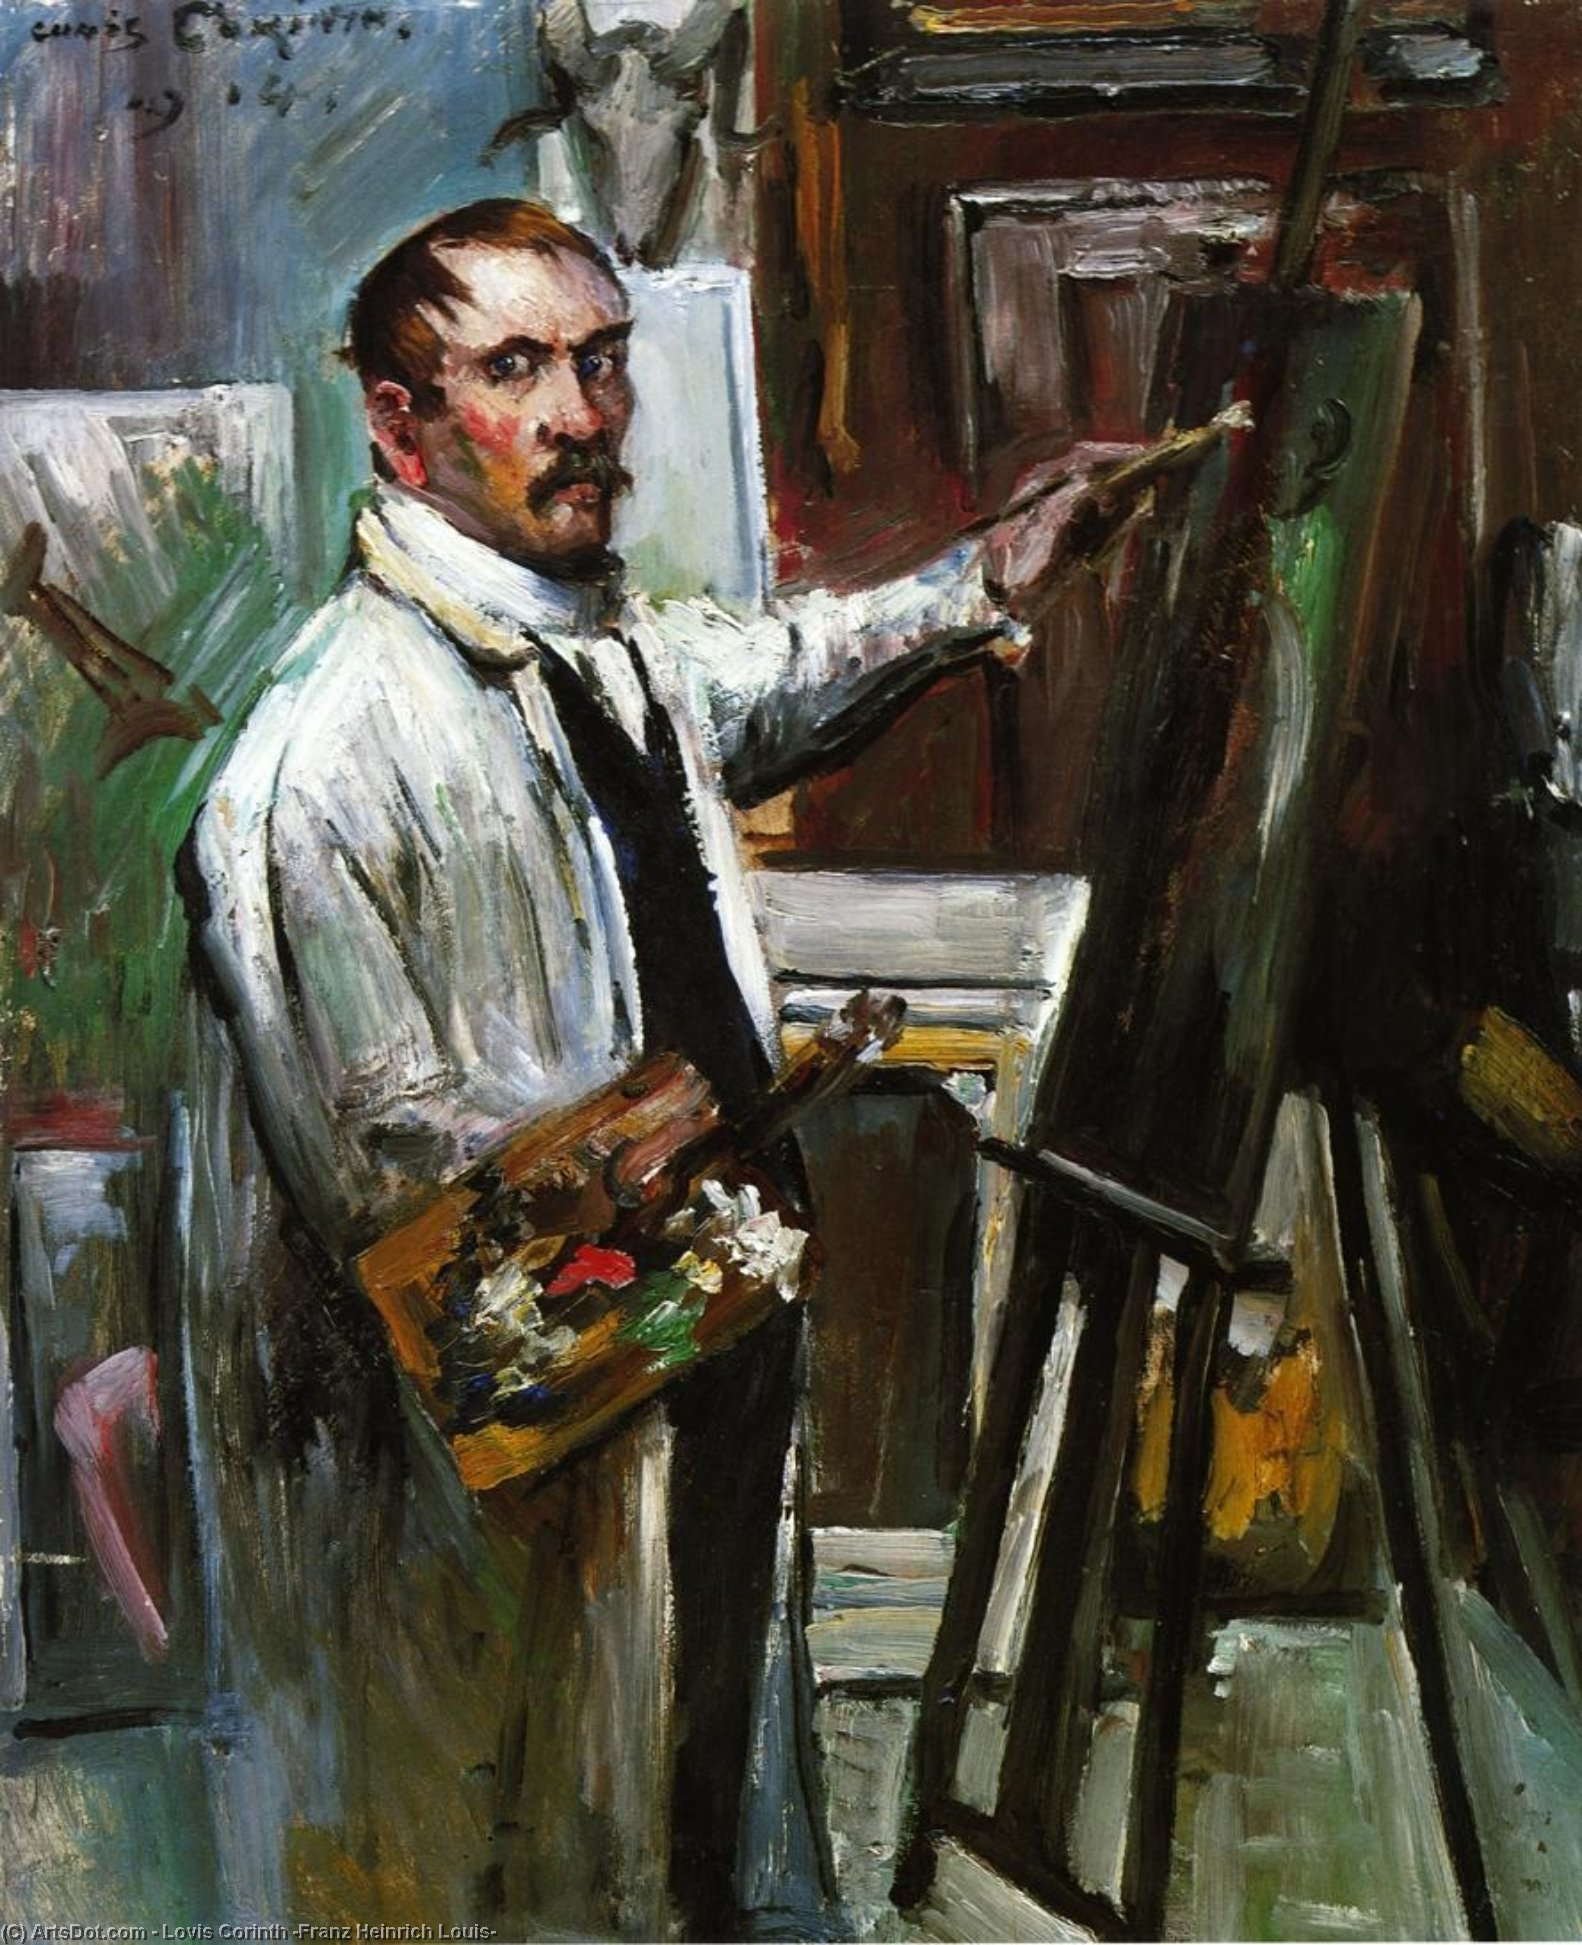 Self Portrait in the Studio, Painting by Lovis Corinth (Franz Heinrich Louis) (1858-1925, Netherlands)